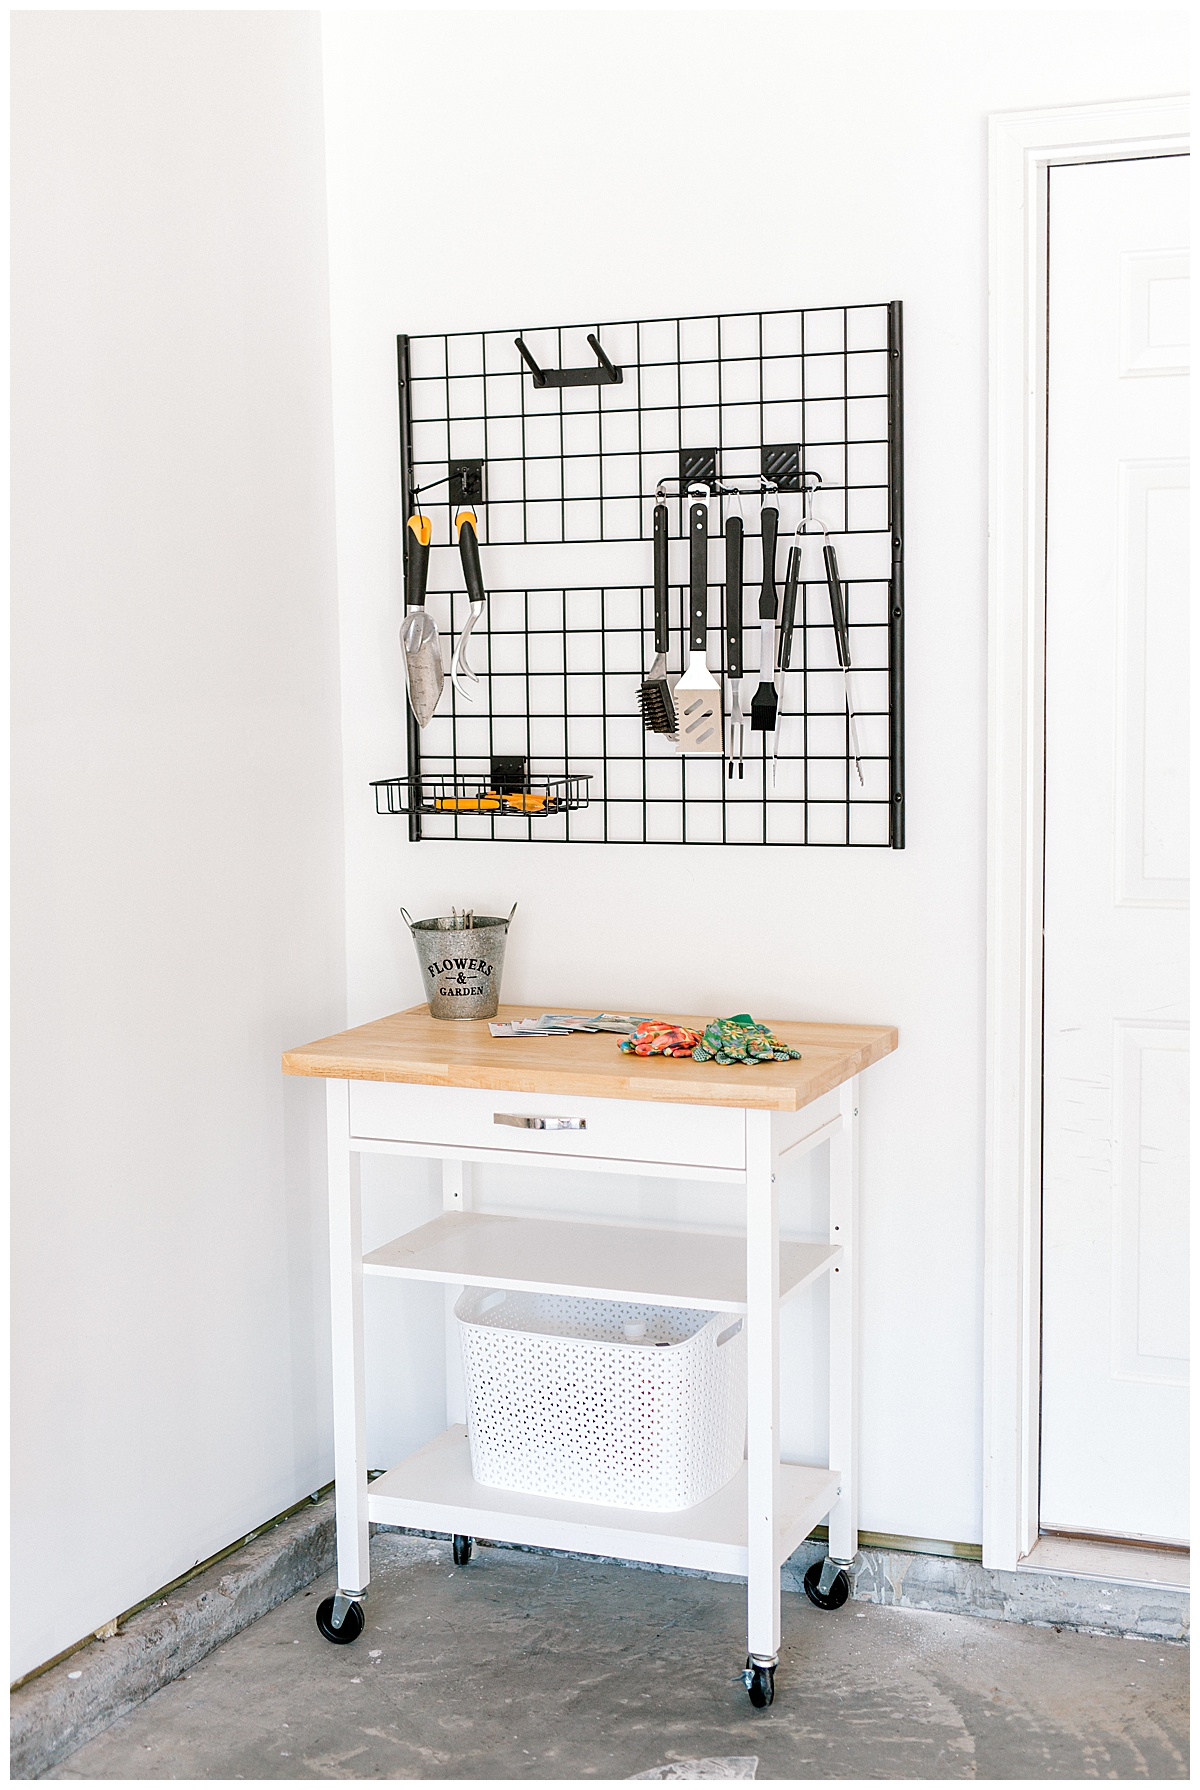 Photo of a corner of a garage with a cart sitting underneath an organizer for gardening tools.